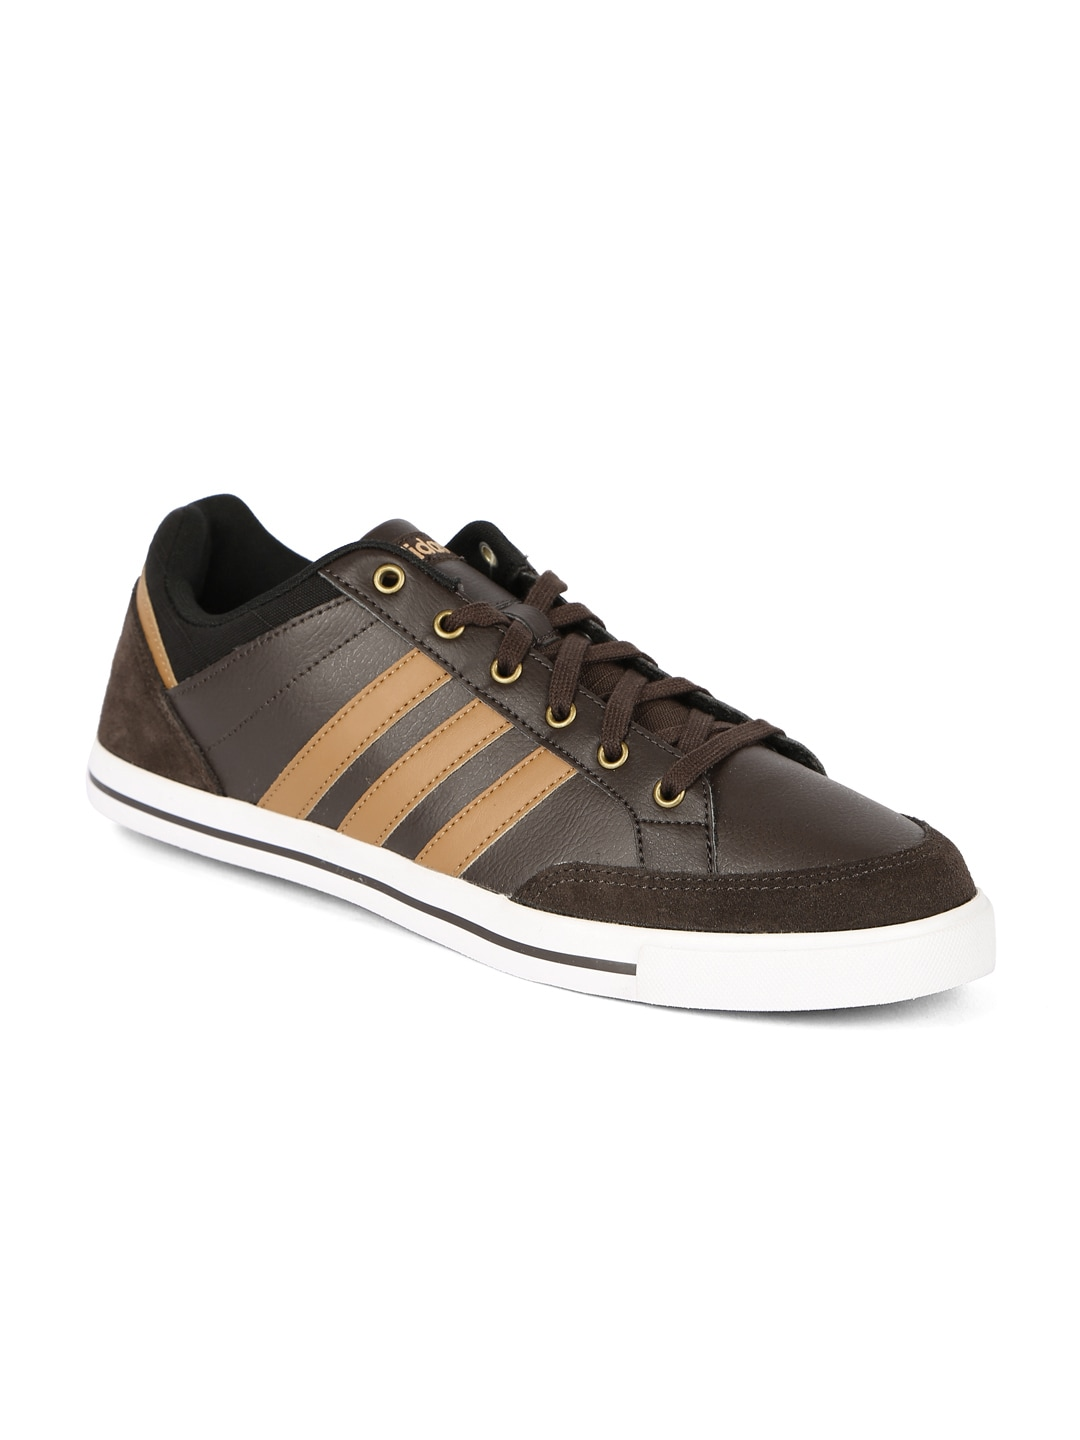 Adidas Neo - Adidas Neo Online Store in India  594fb780db4